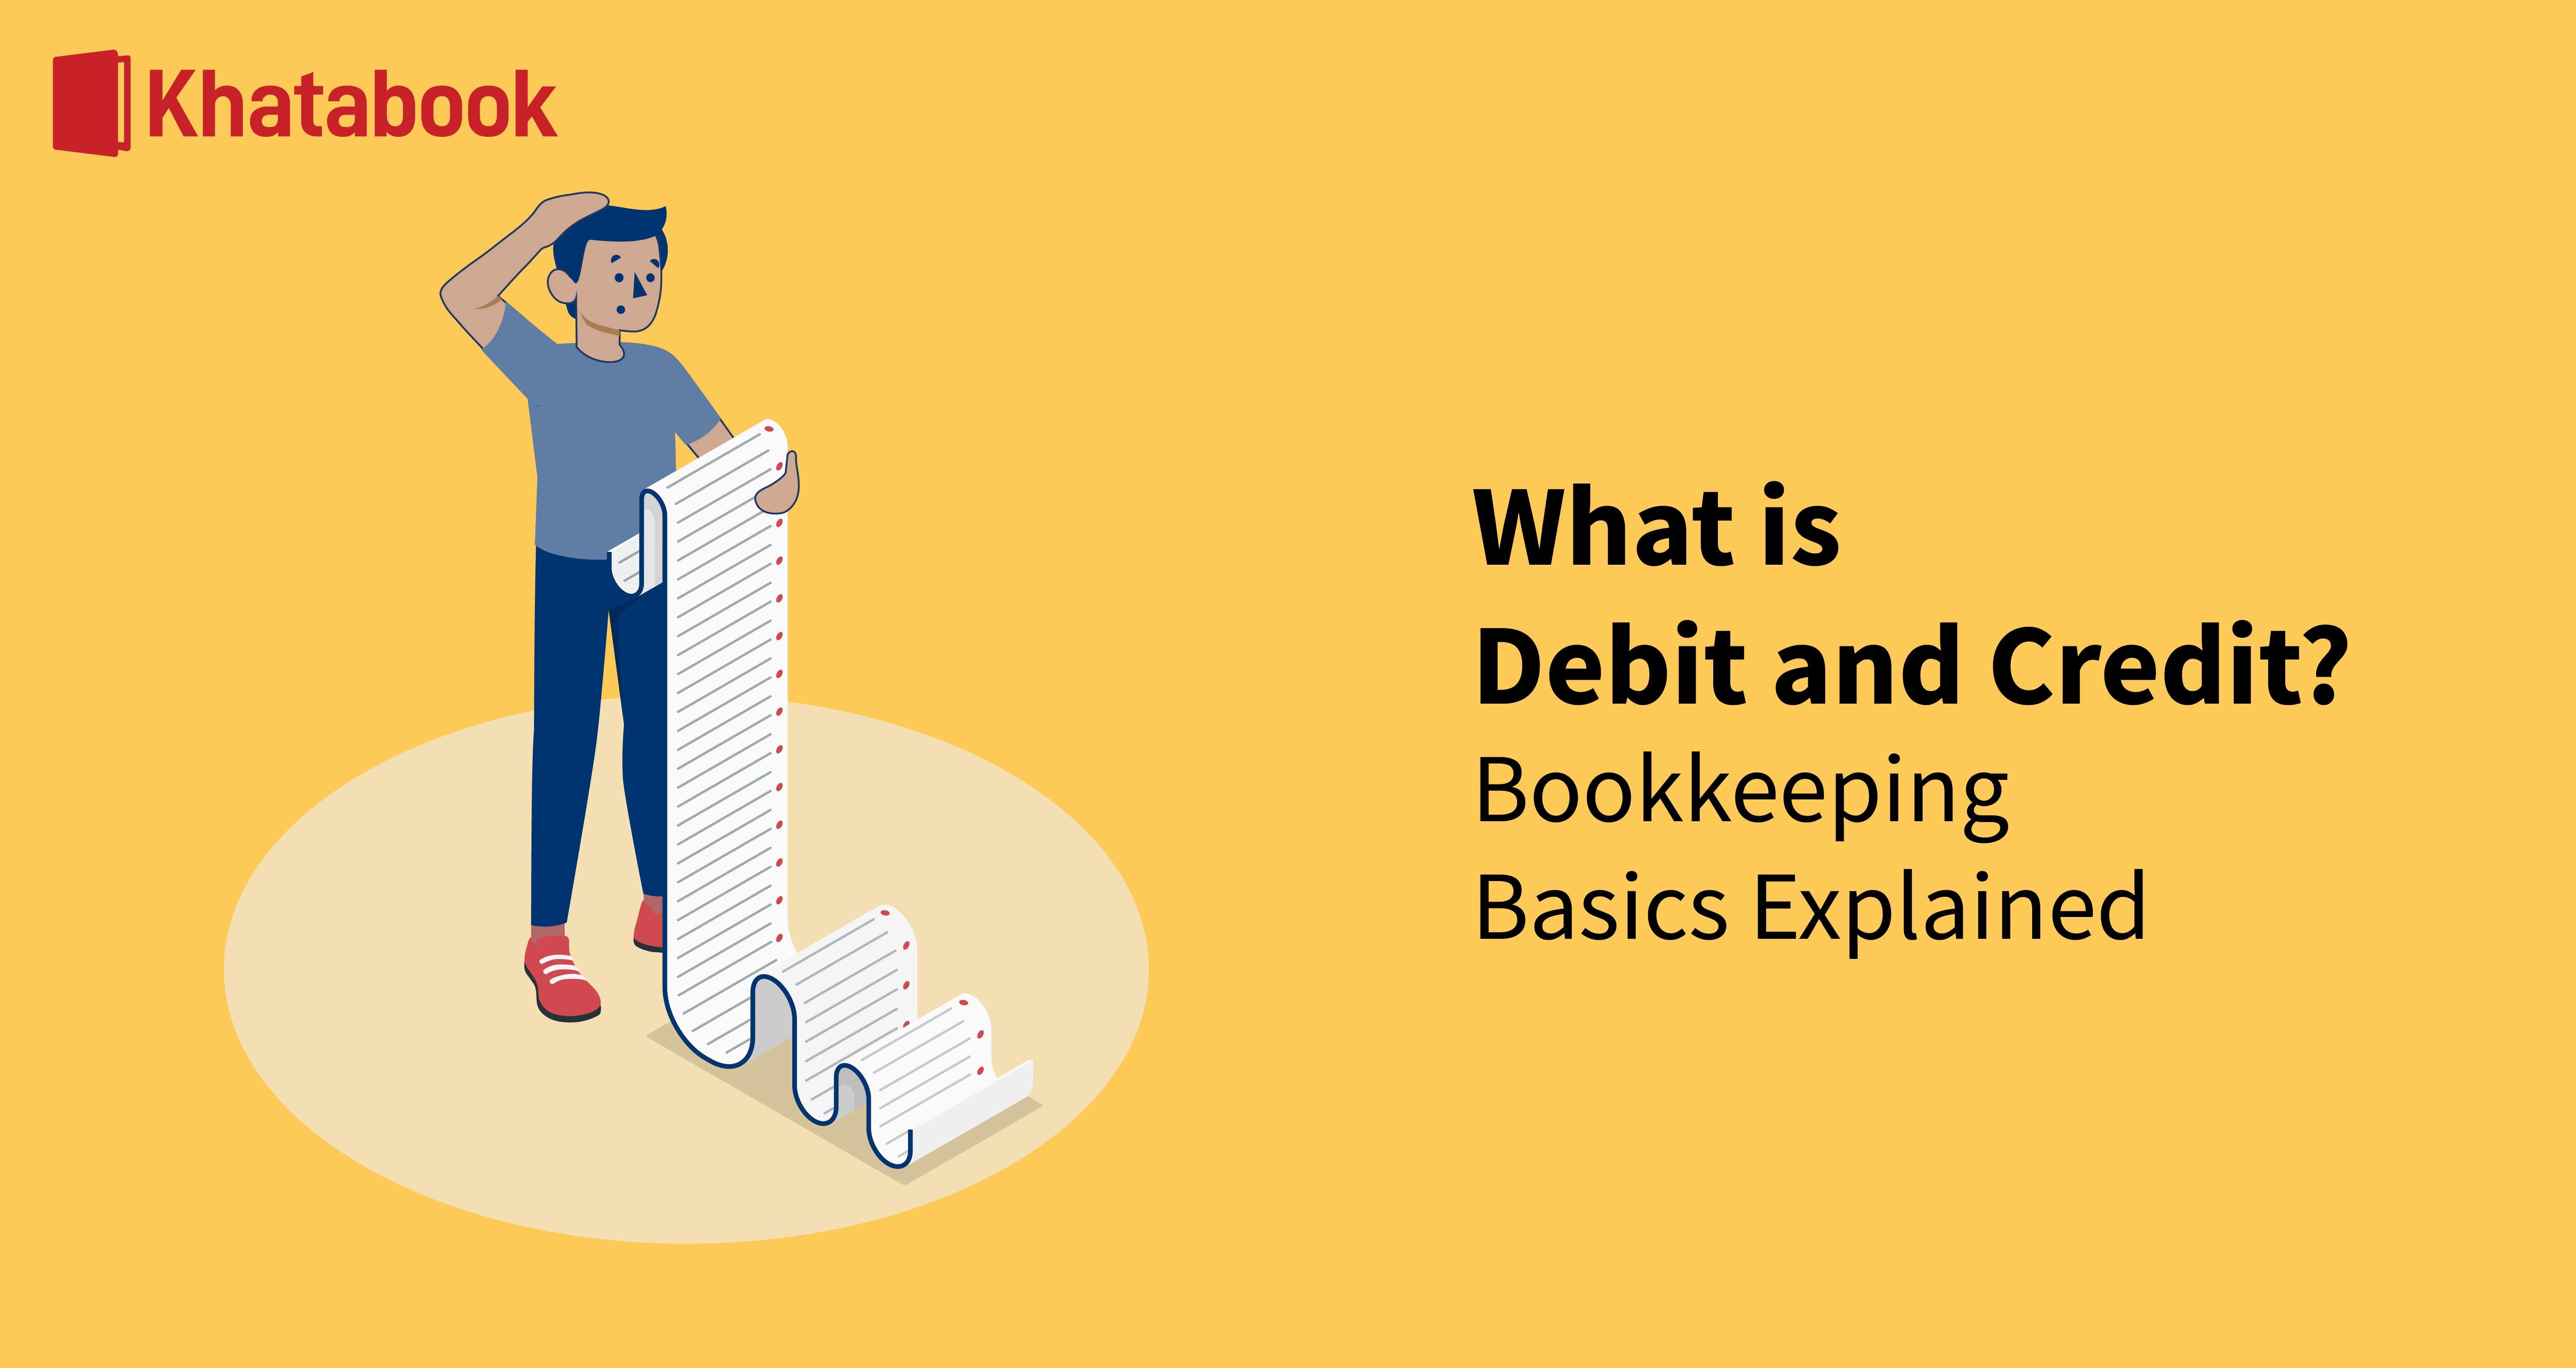 What Are Debit and Credit? Bookkeeping Basics Explained